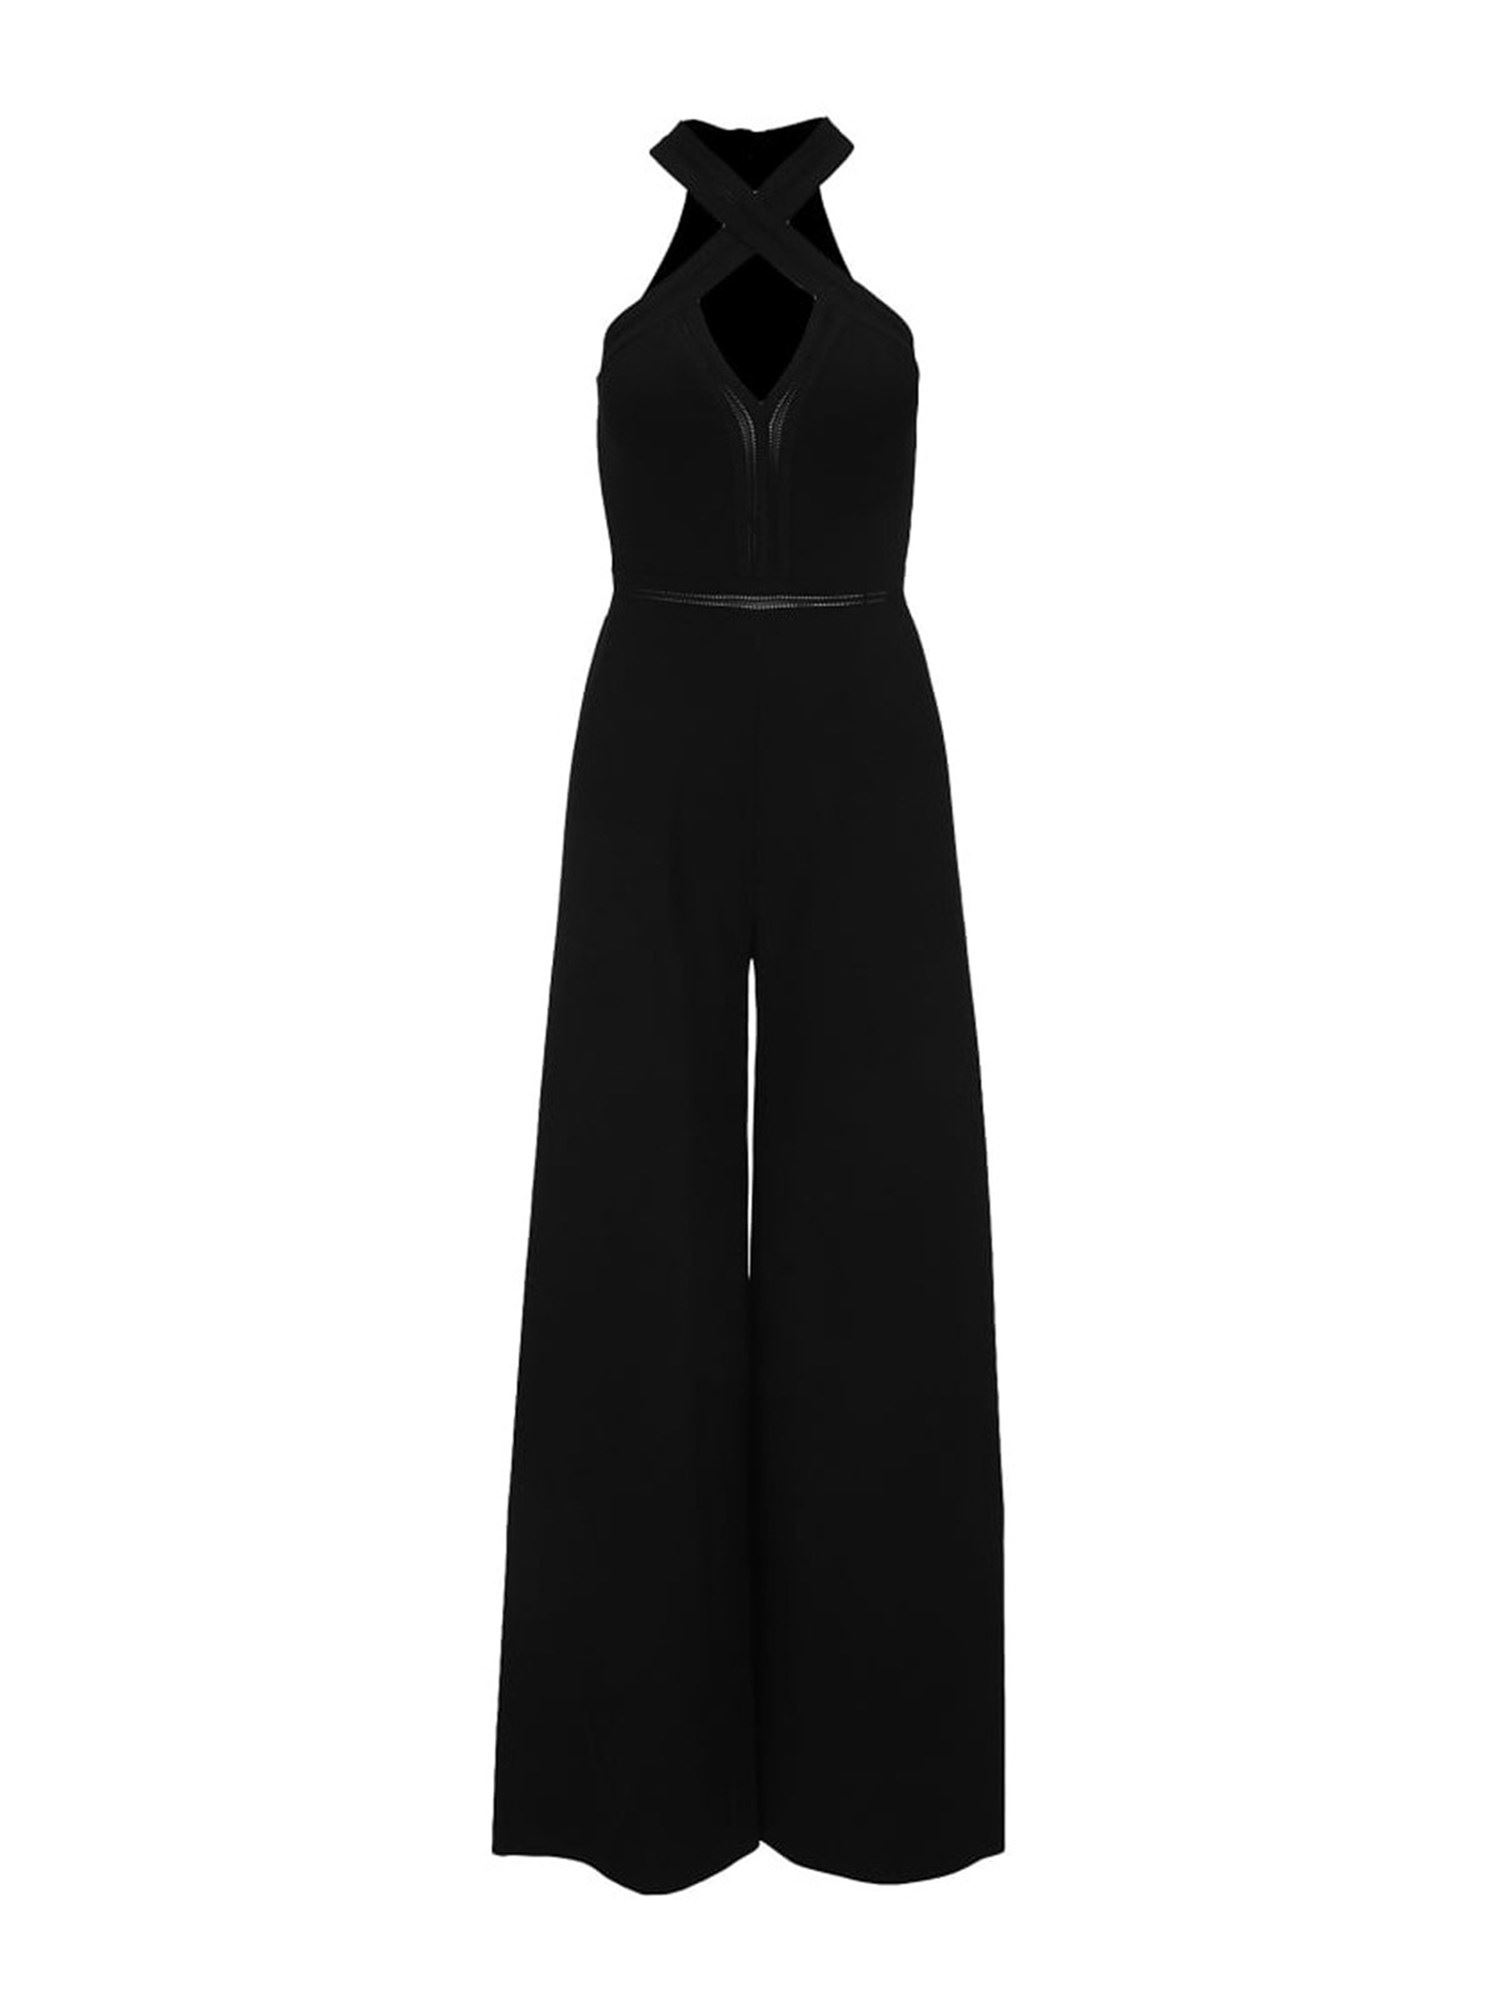 Stella Mccartney STELLA MCCARTNEY CROSSED BANDS DETAILED JUMPSUIT IN BLACK